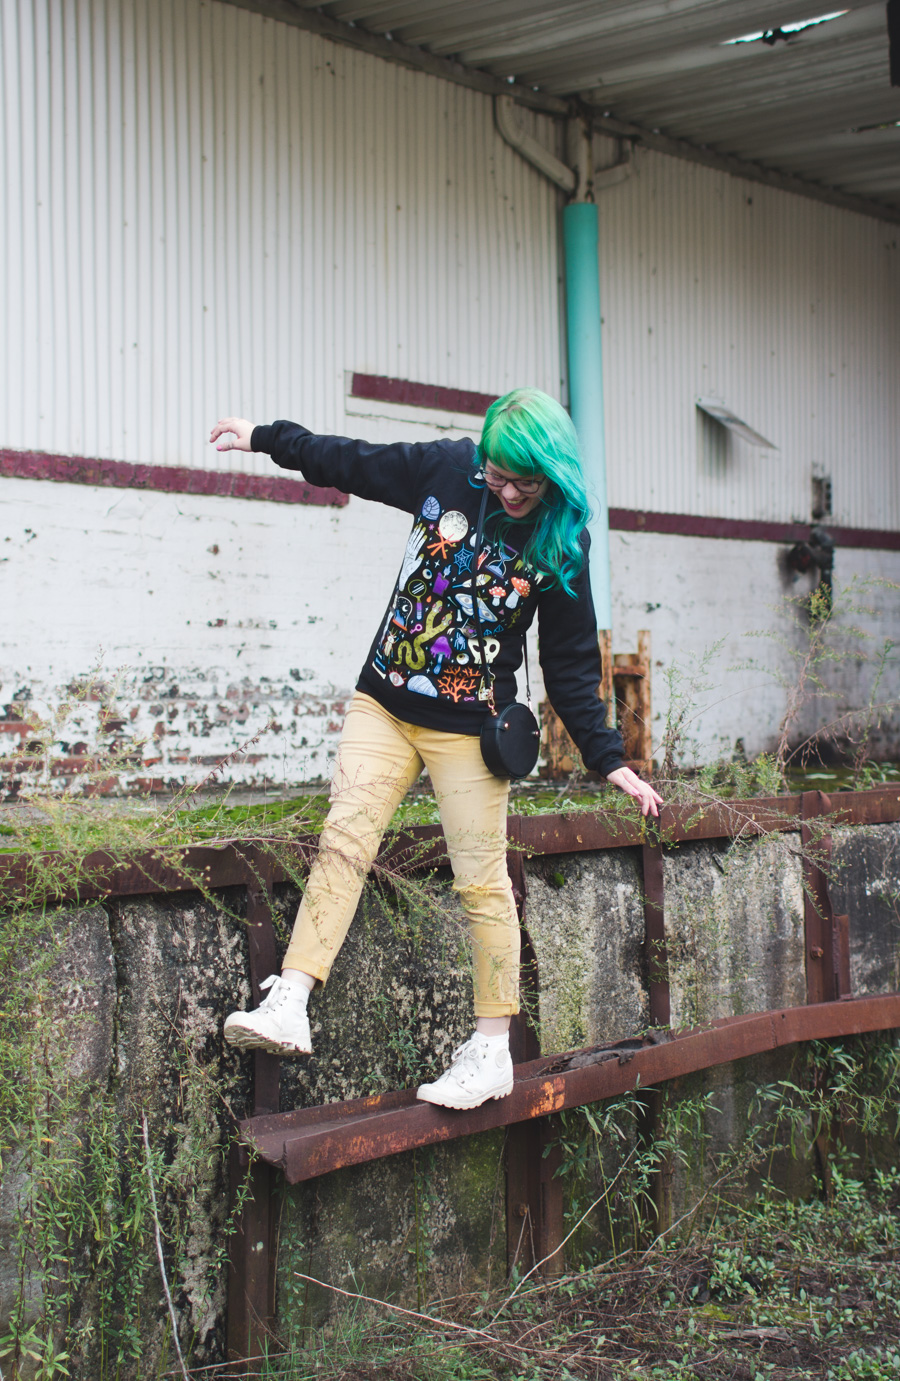 wicked clothes, yellow pants, paladium boots, green and blue hair